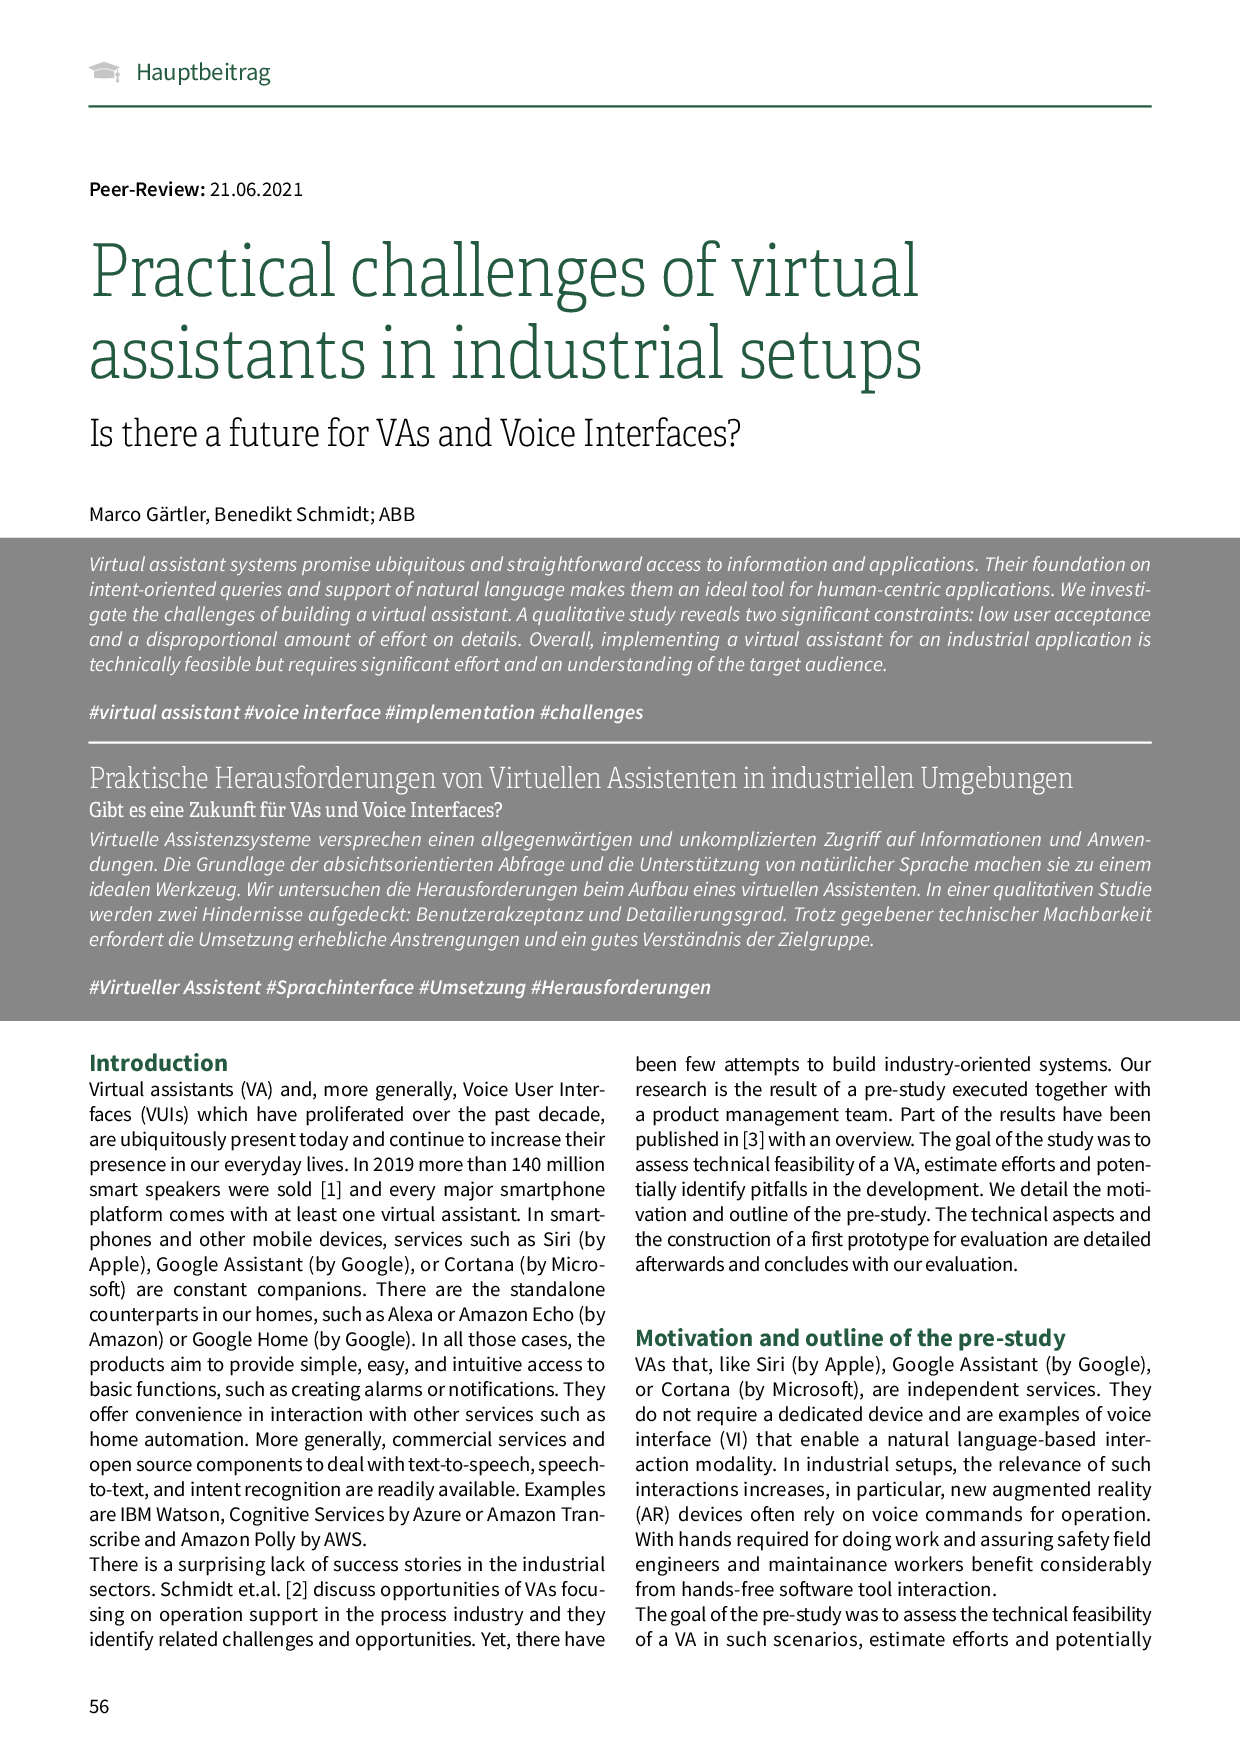 Practical challenges of virtual assistants in industrial setups